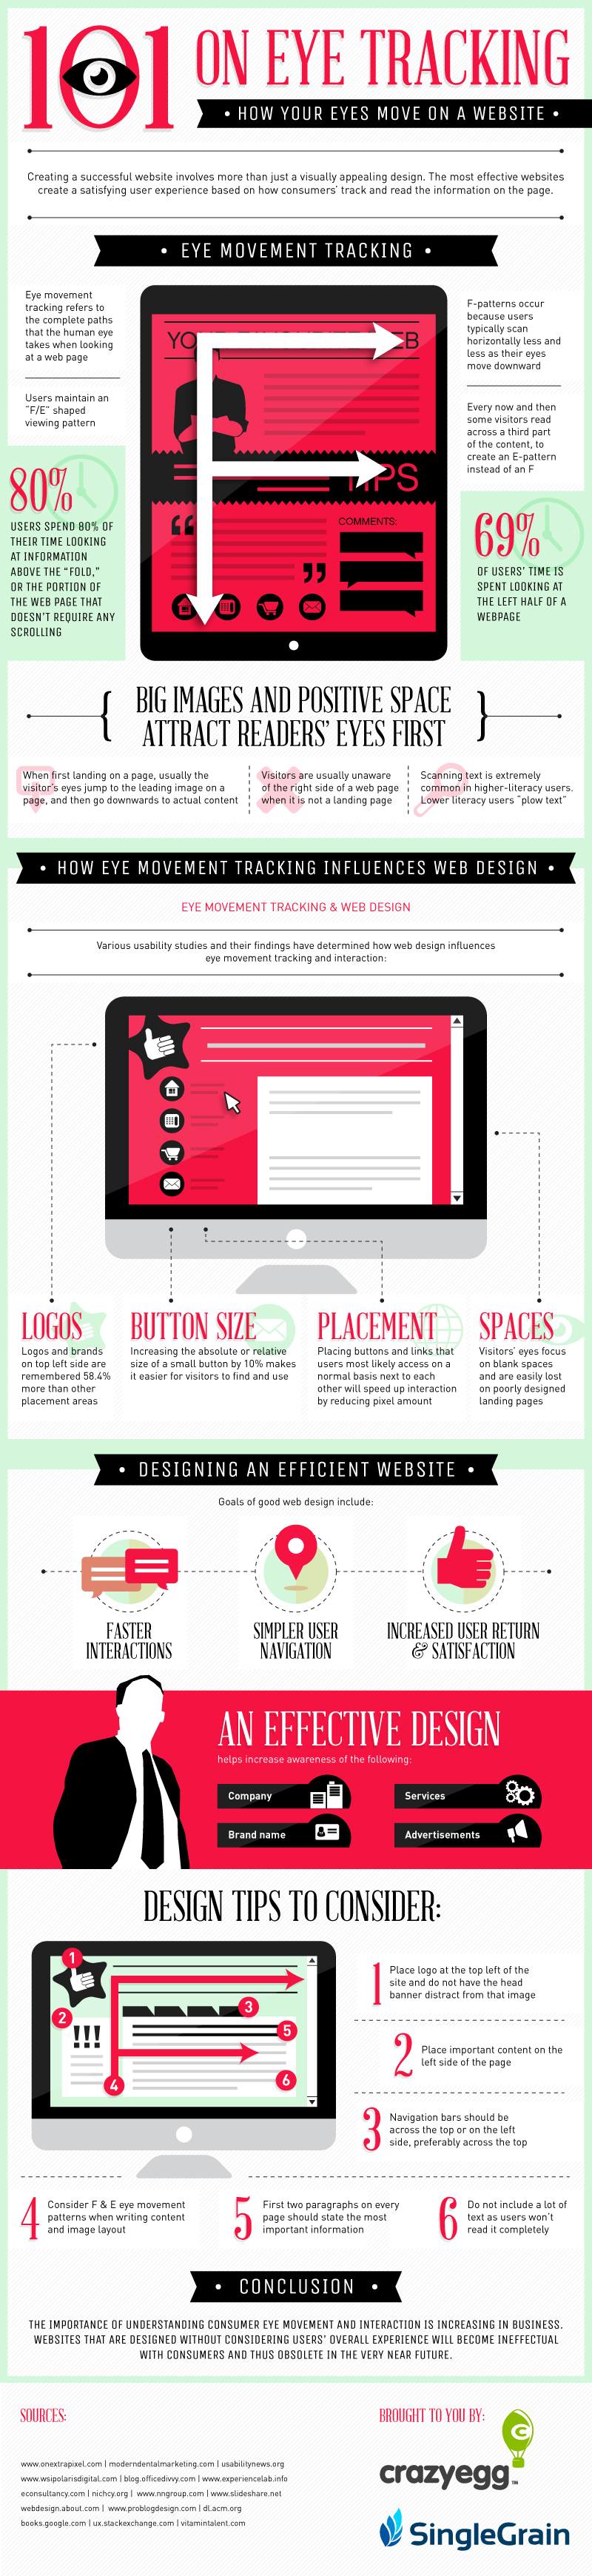 101-on-eye-tracking-how-your-eyes-move-on-a-website-infographic-internet-marketing-with-blog-optimization